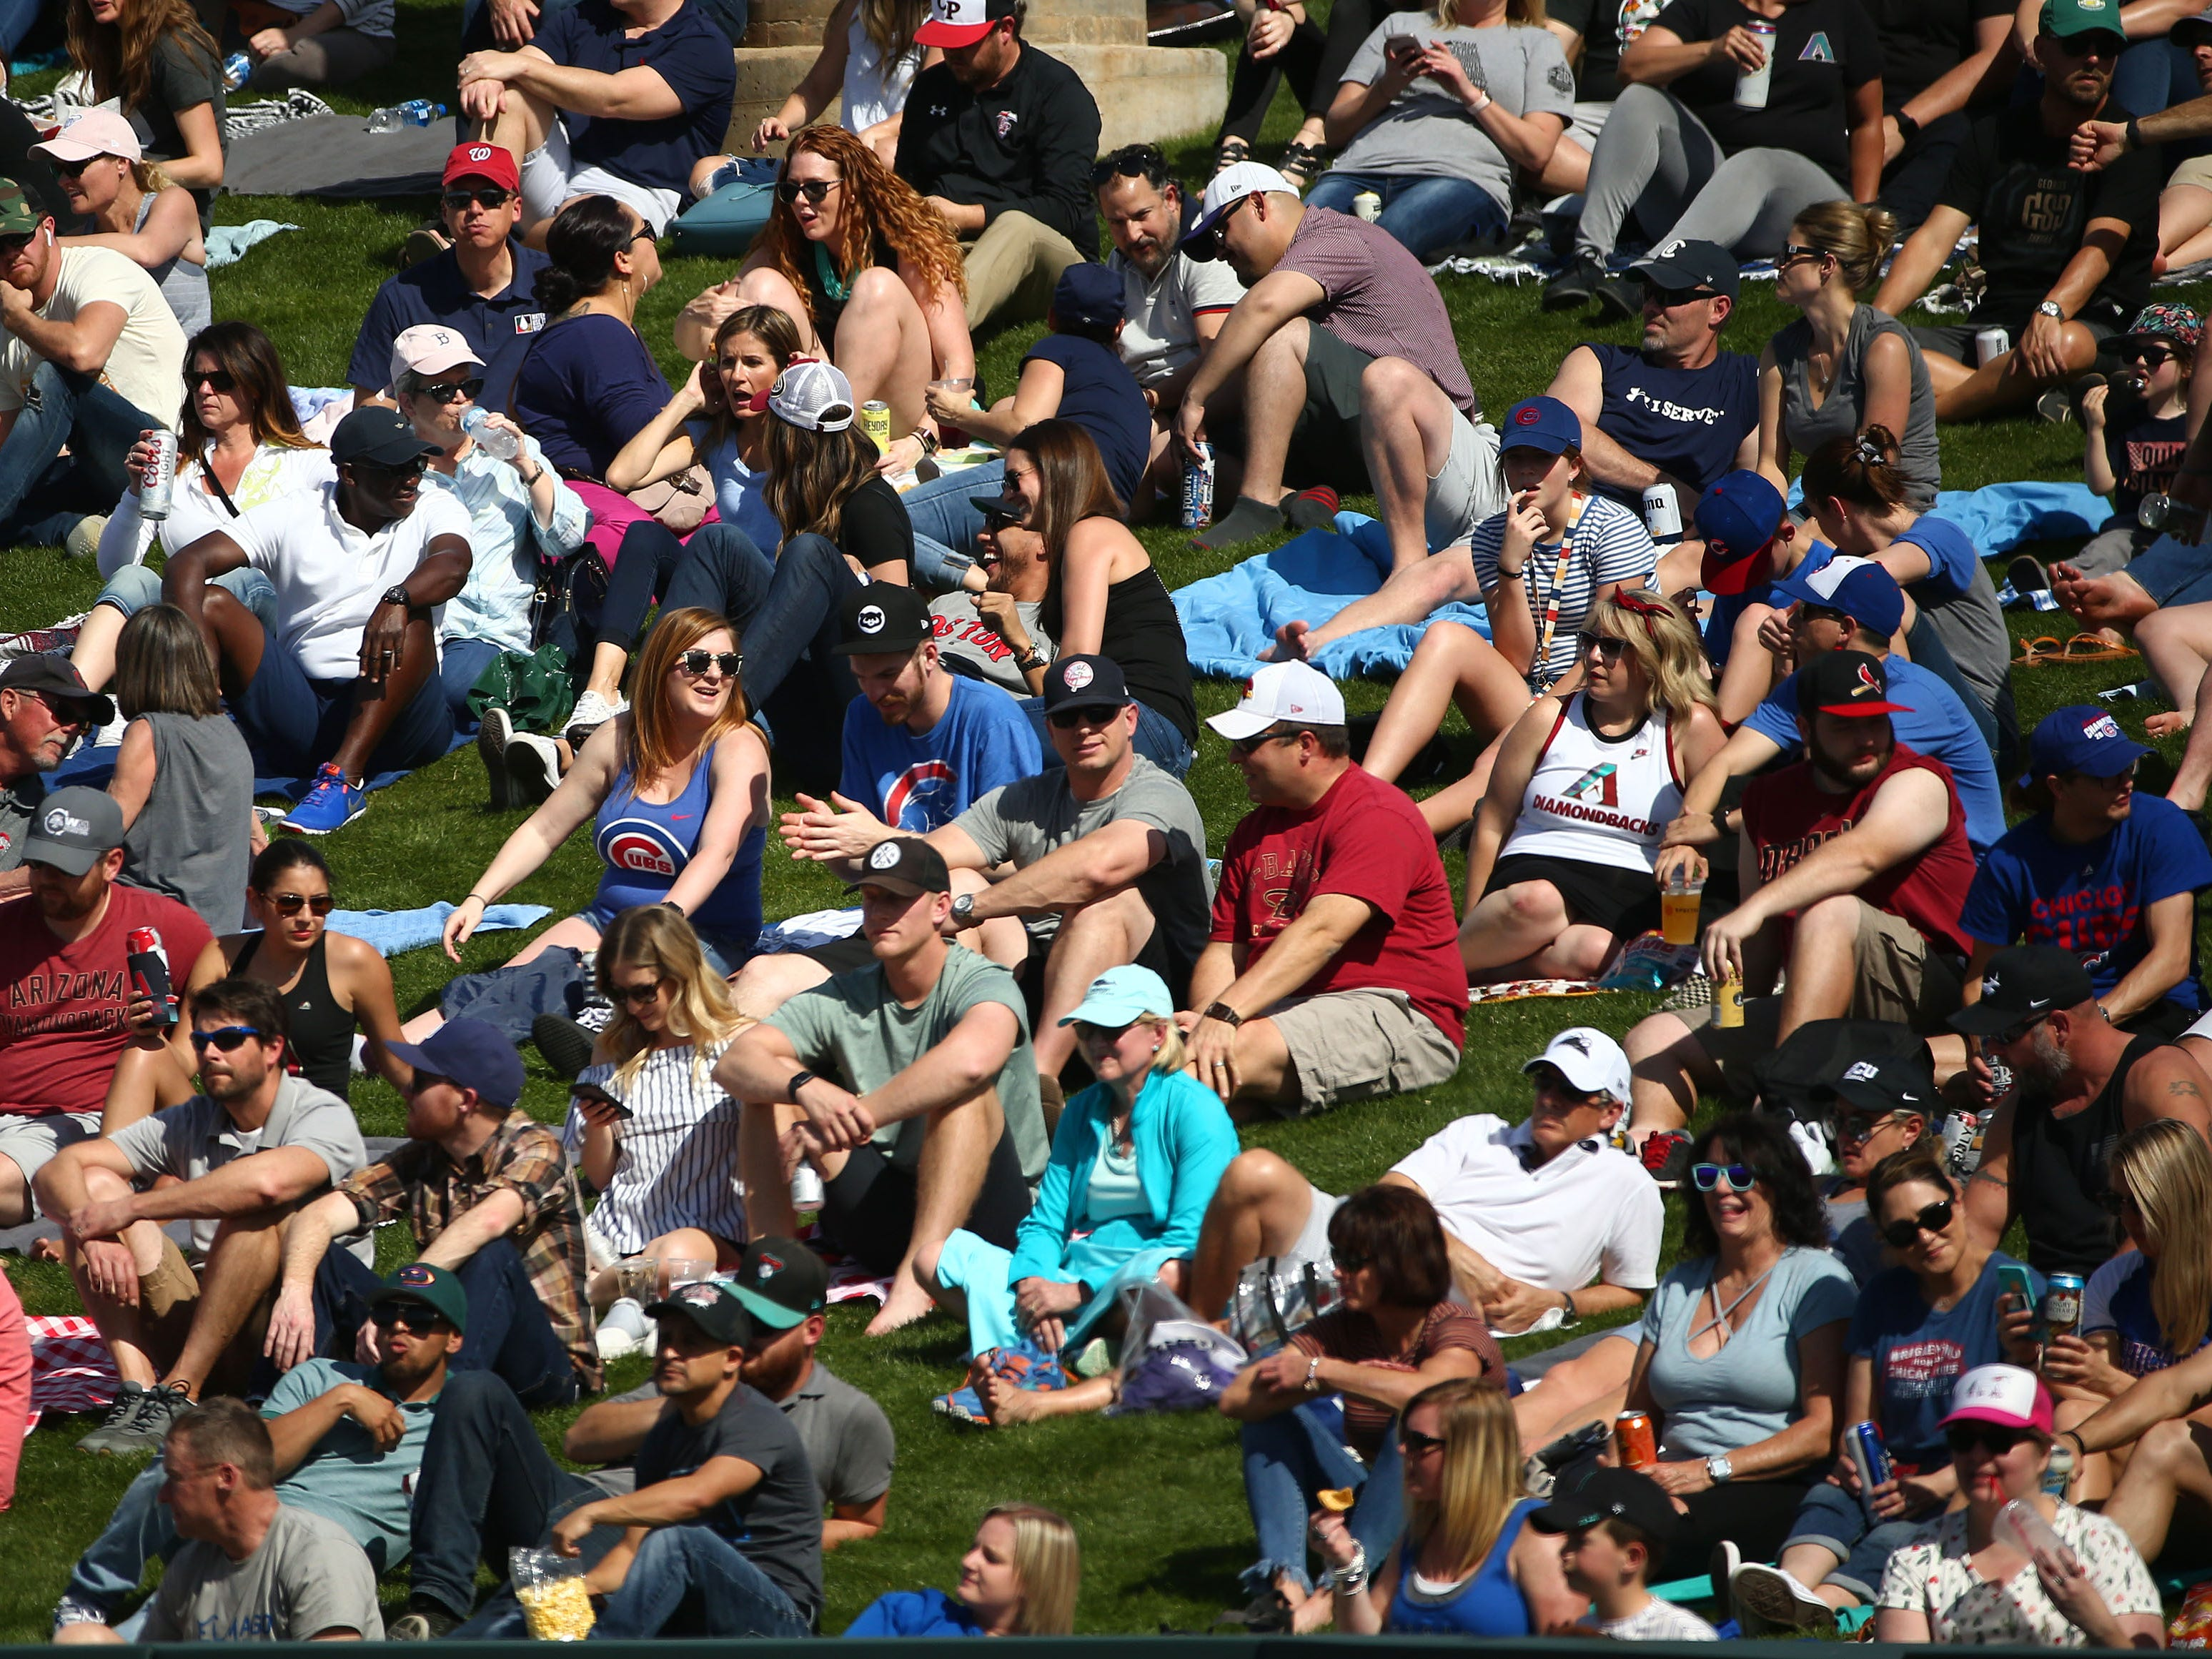 Fans crowd the outfield lawn as the Arizona Diamondbacks play the Chicago Cubs during a spring training game on Mar. 1, 2019 at Salt River Fields in Scottsdale, Ariz.